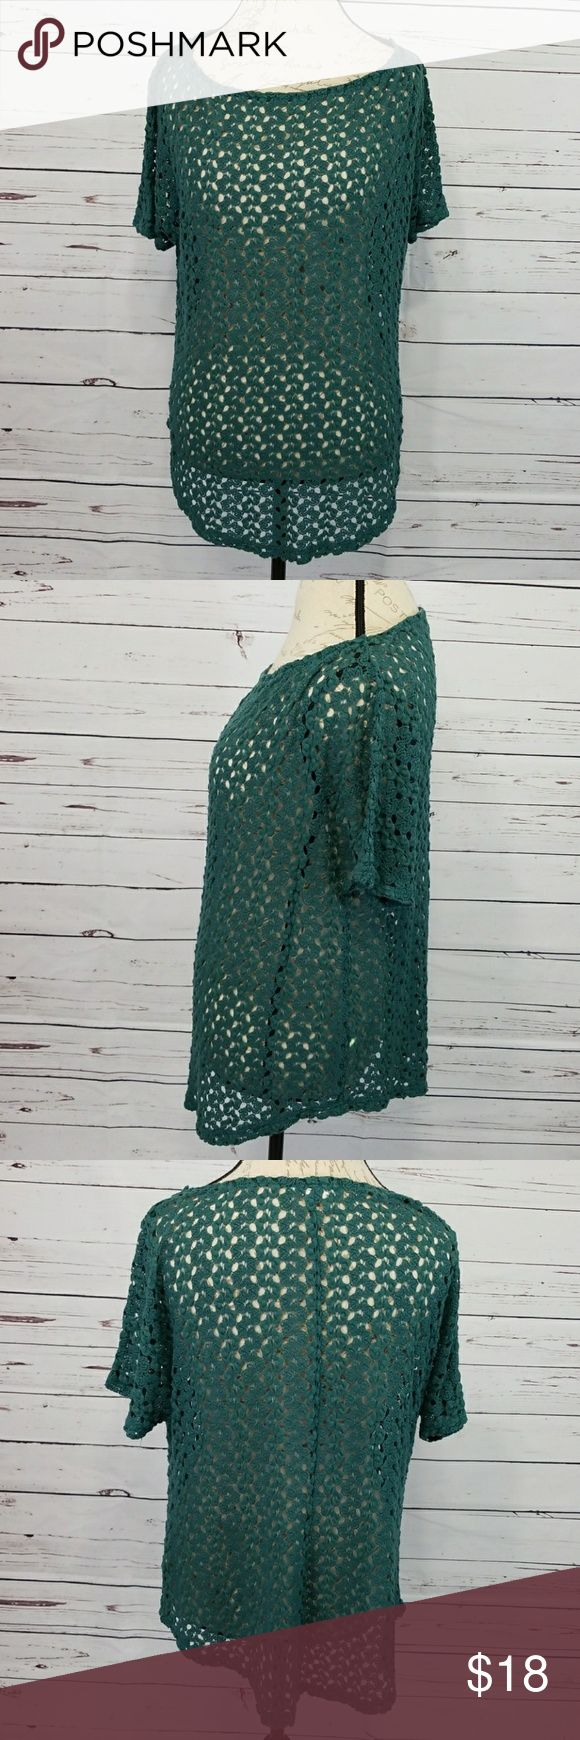 """Staring at Stars teal crochet top EUC Staring at Stars (Urban Outfitters) teal see through crochet short sleeve top. Polyester and rayon blend. Hand wash. Lay flat measurements: 22"""" pit to pit, 24"""" long on sides, 28"""" long front and back. Urban Outfitters Tops Tees - Short Sleeve"""